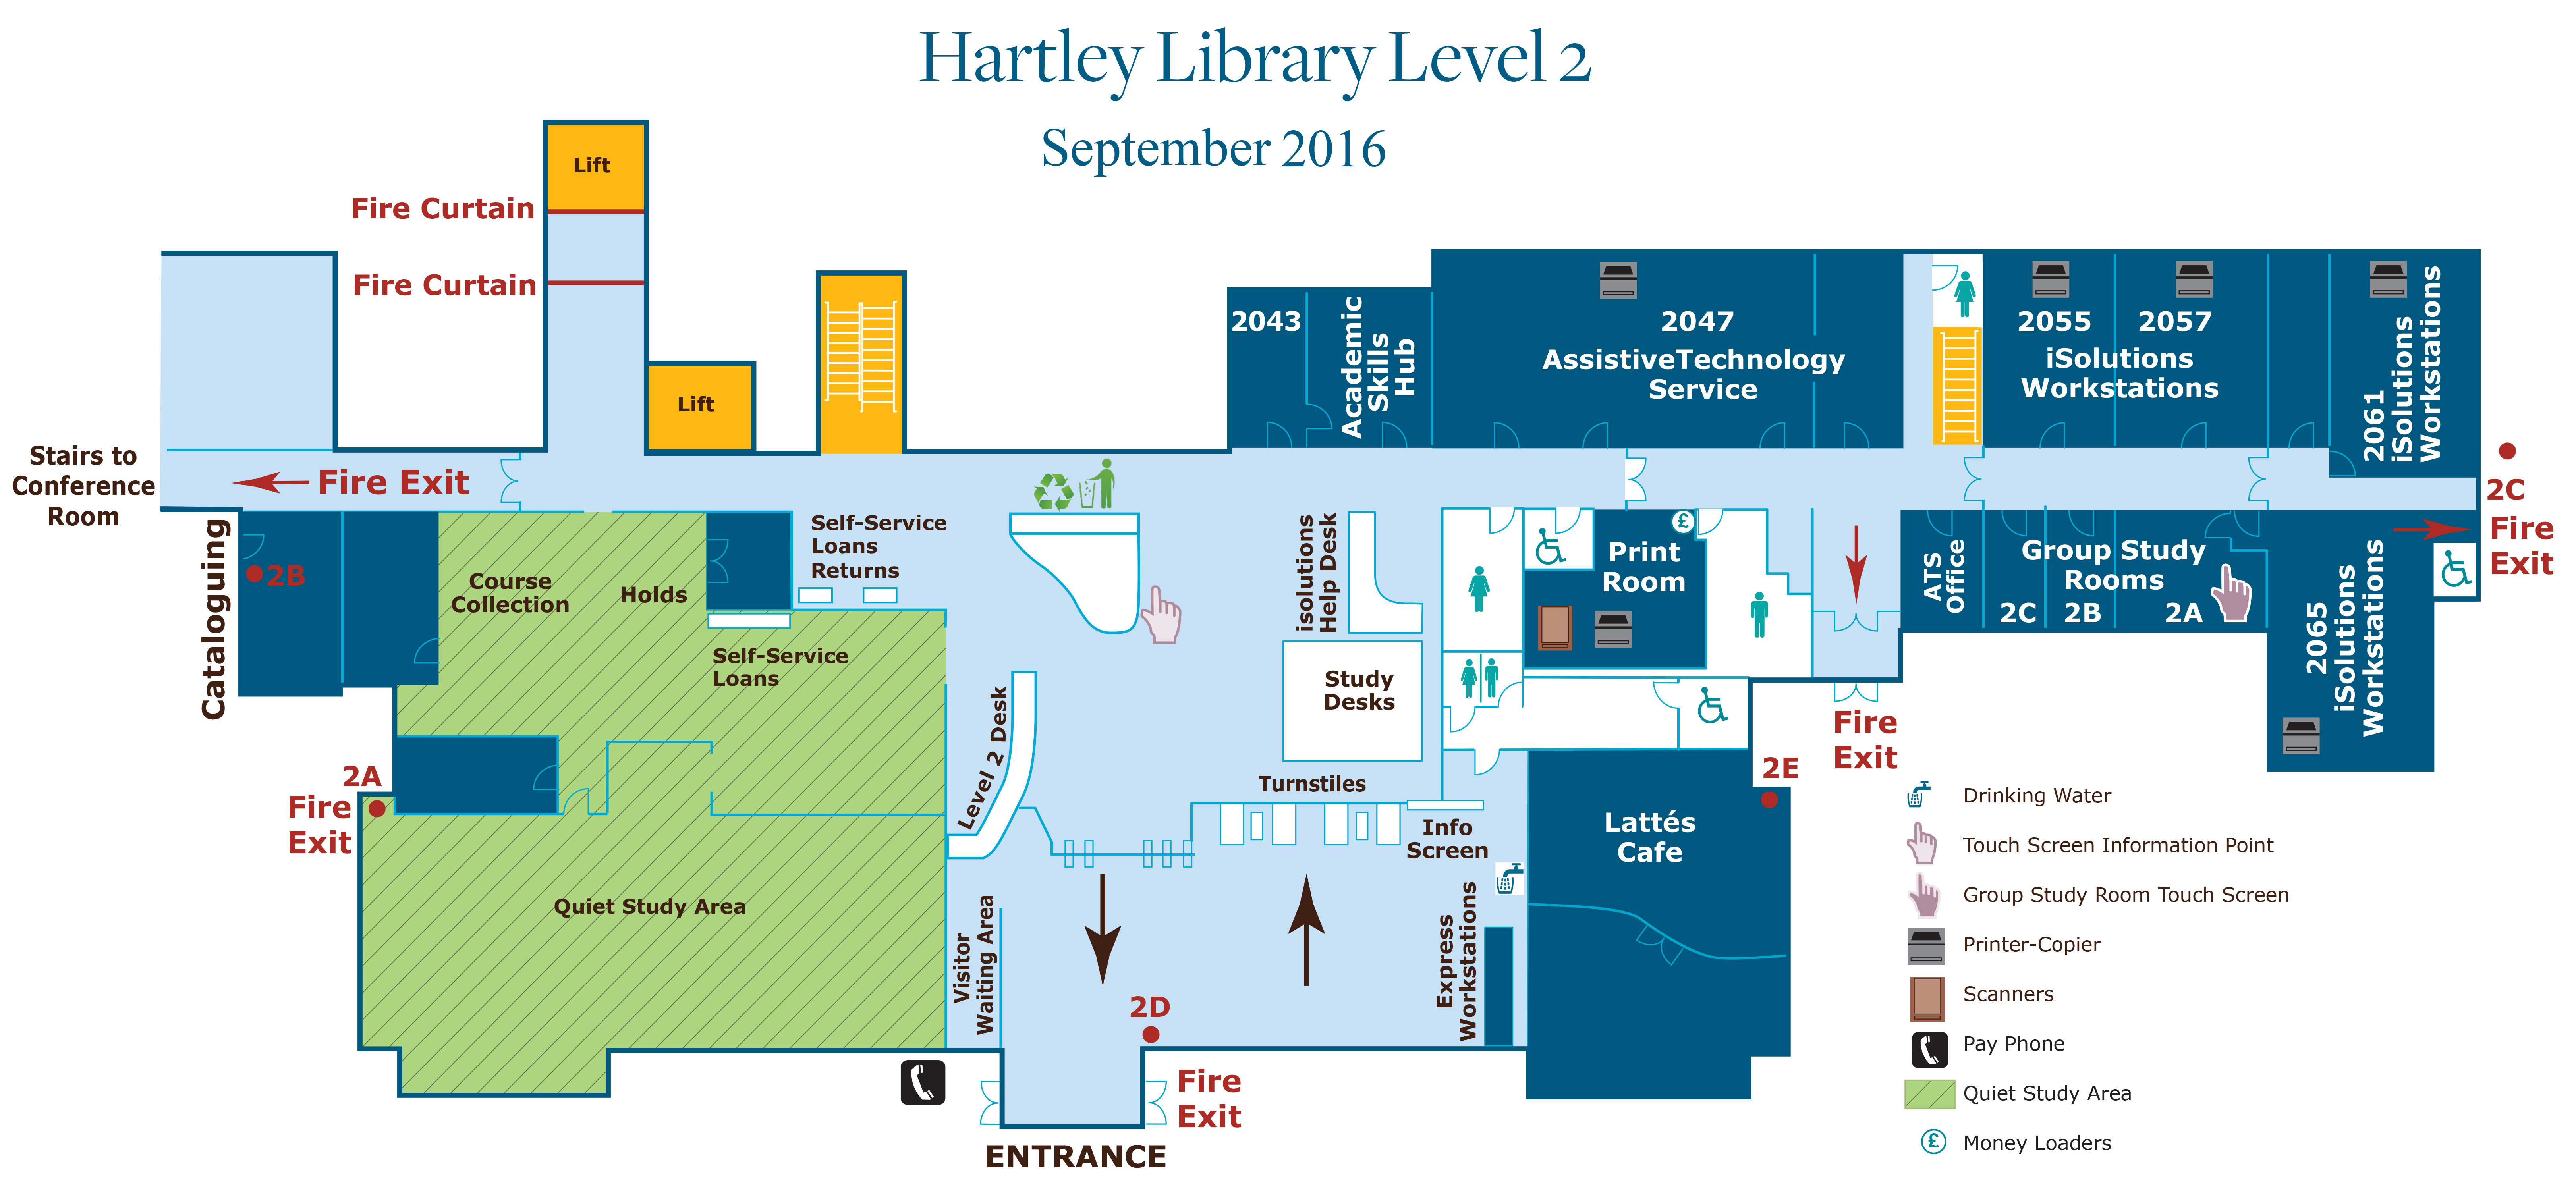 floor plans hartley library libguides southampton at